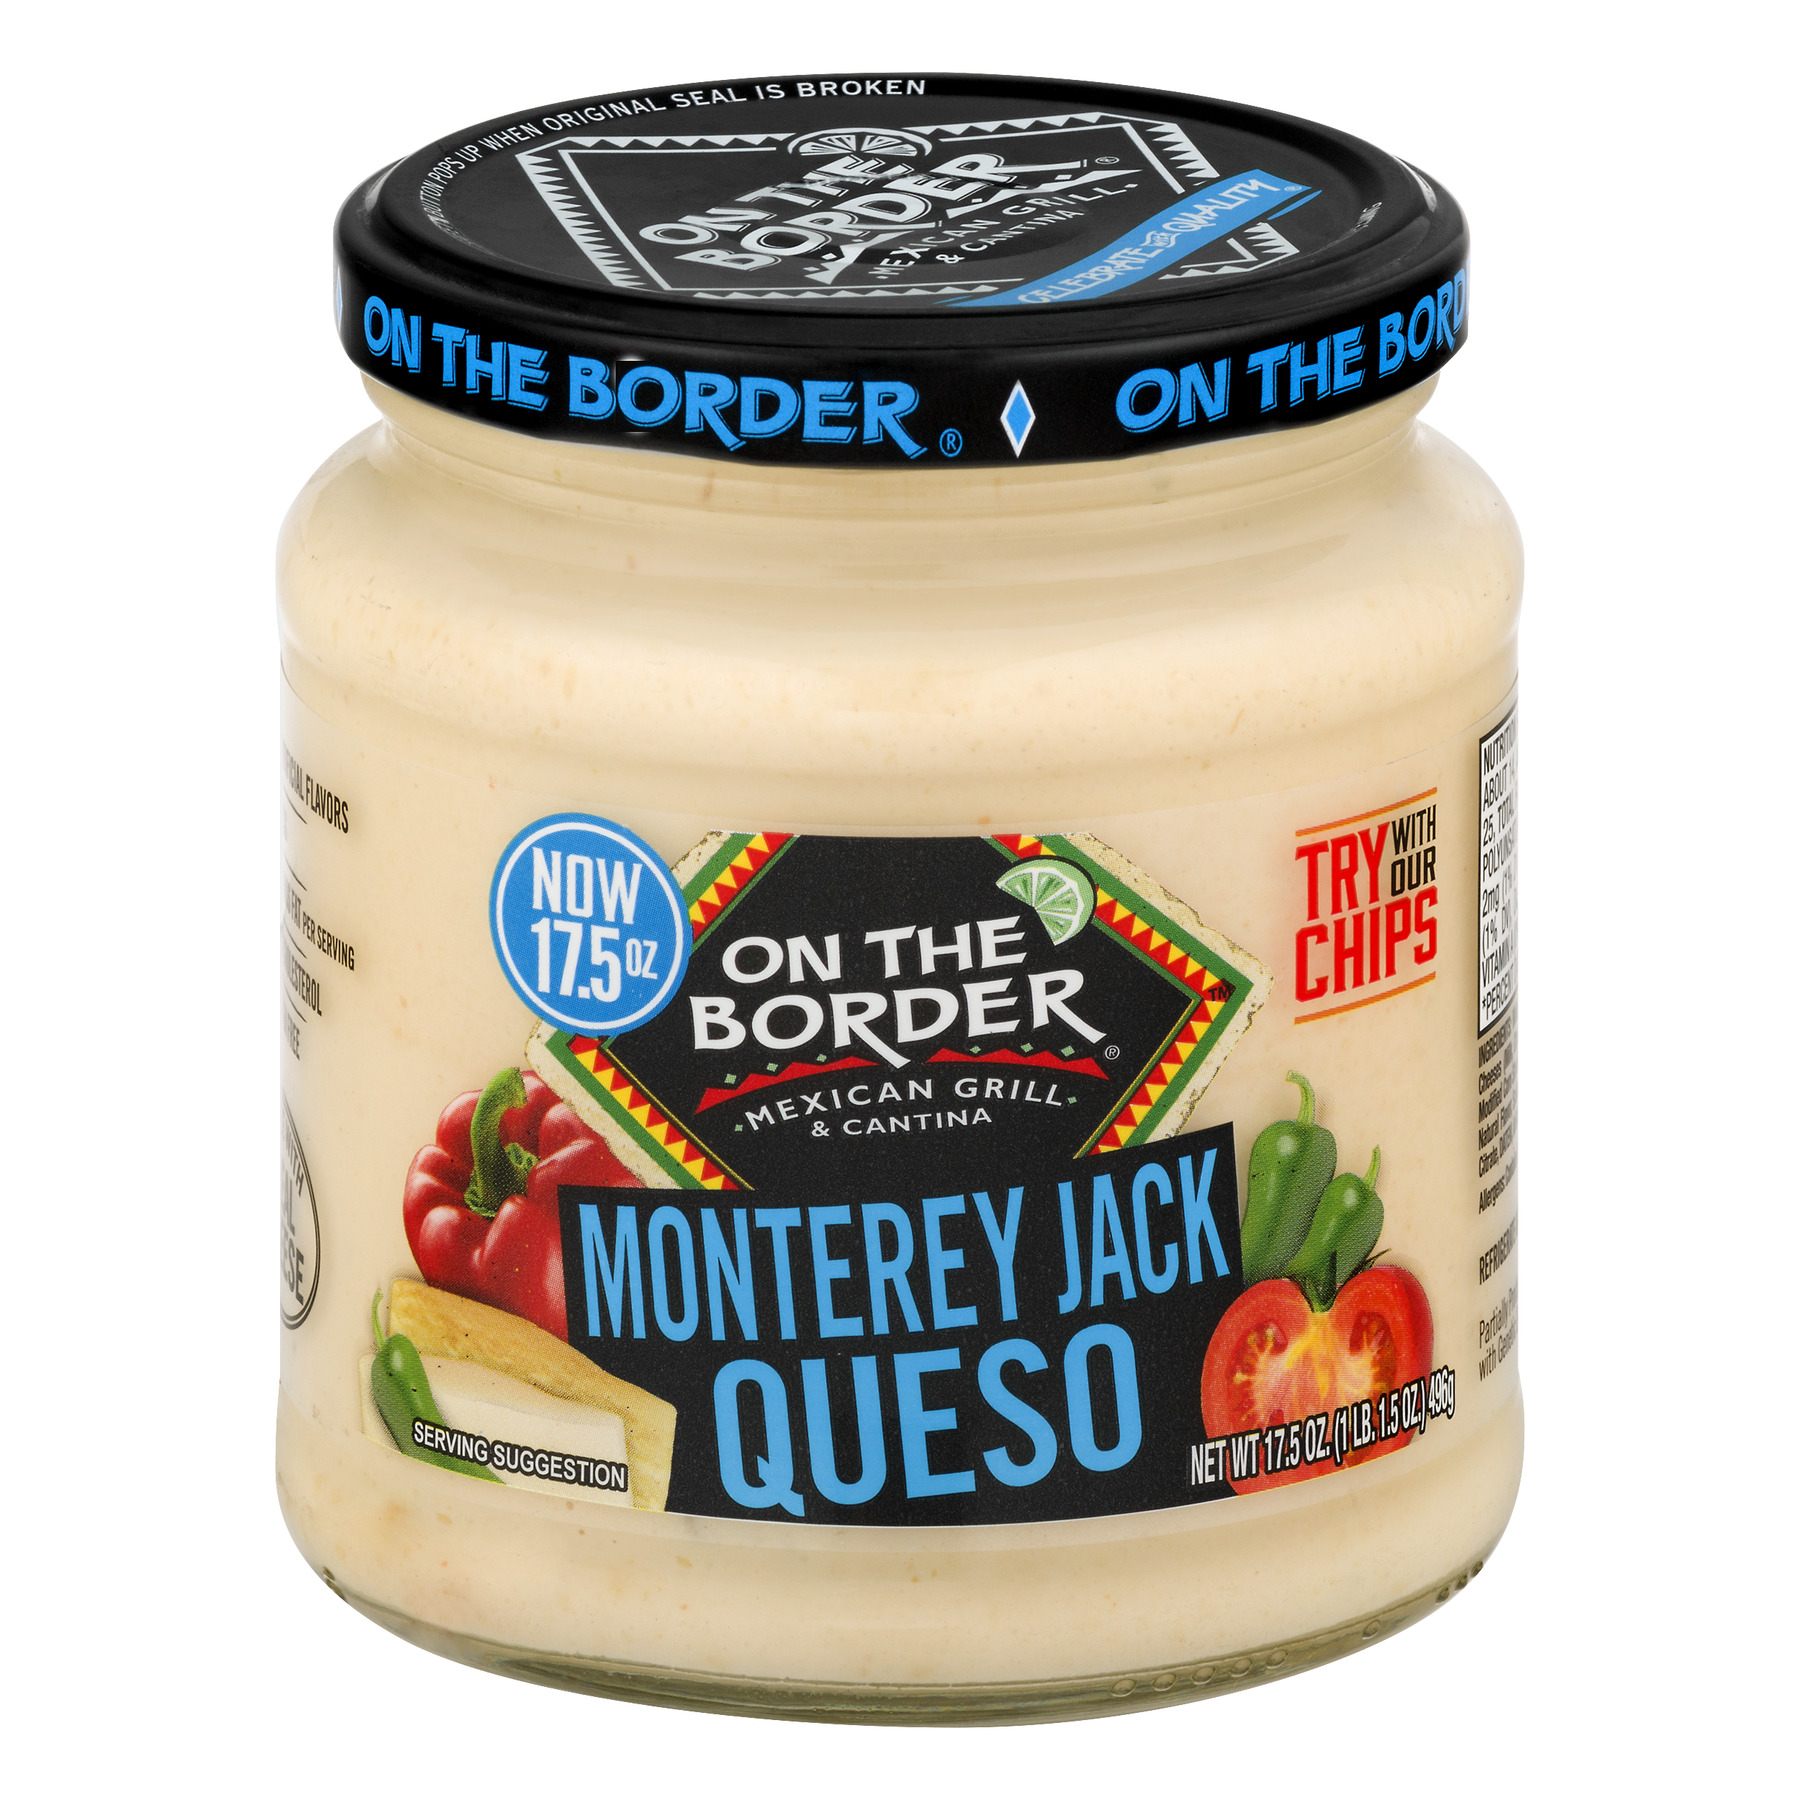 ON THE BORDER Monterey Jack Queso, 17.5 OZ